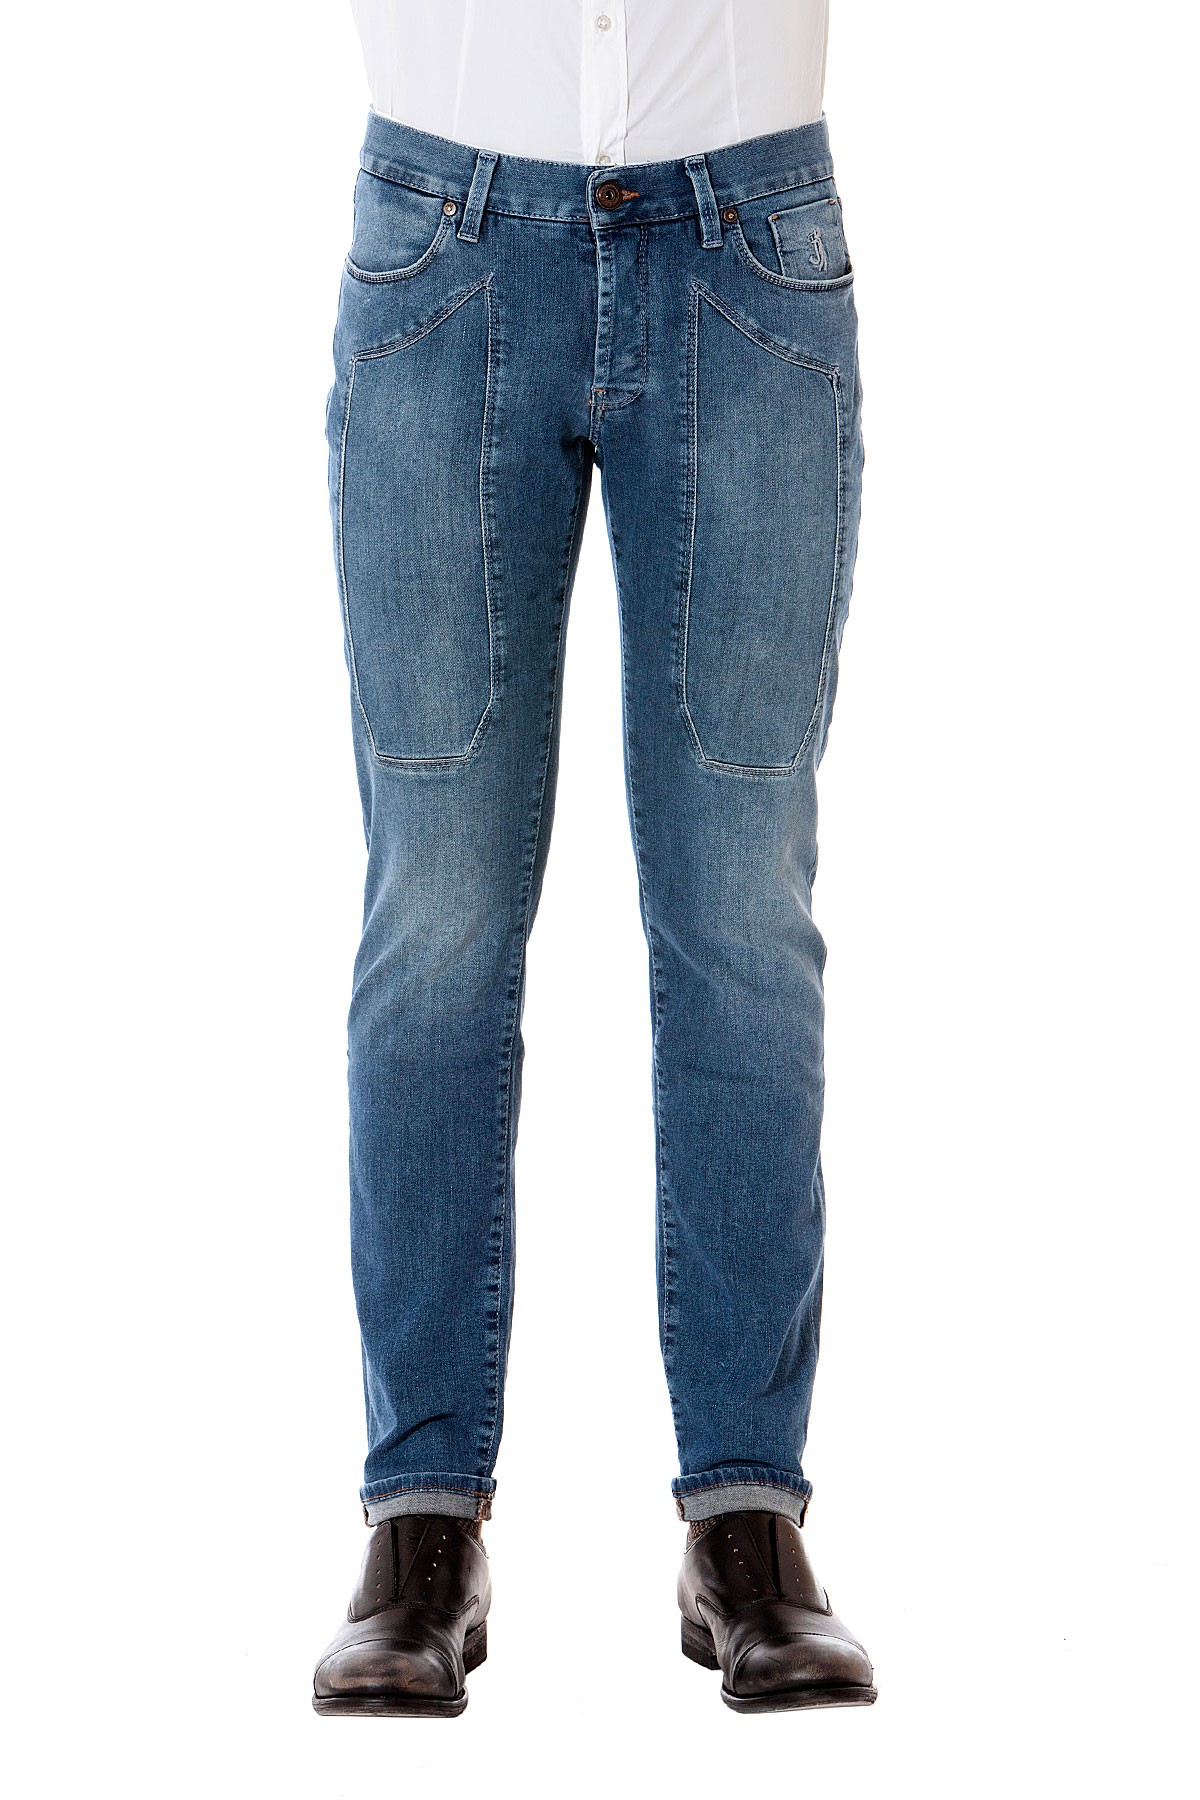 df6f647bfc414 JECKERSON Denim with five pockets for man autumn winter 14-15 ...